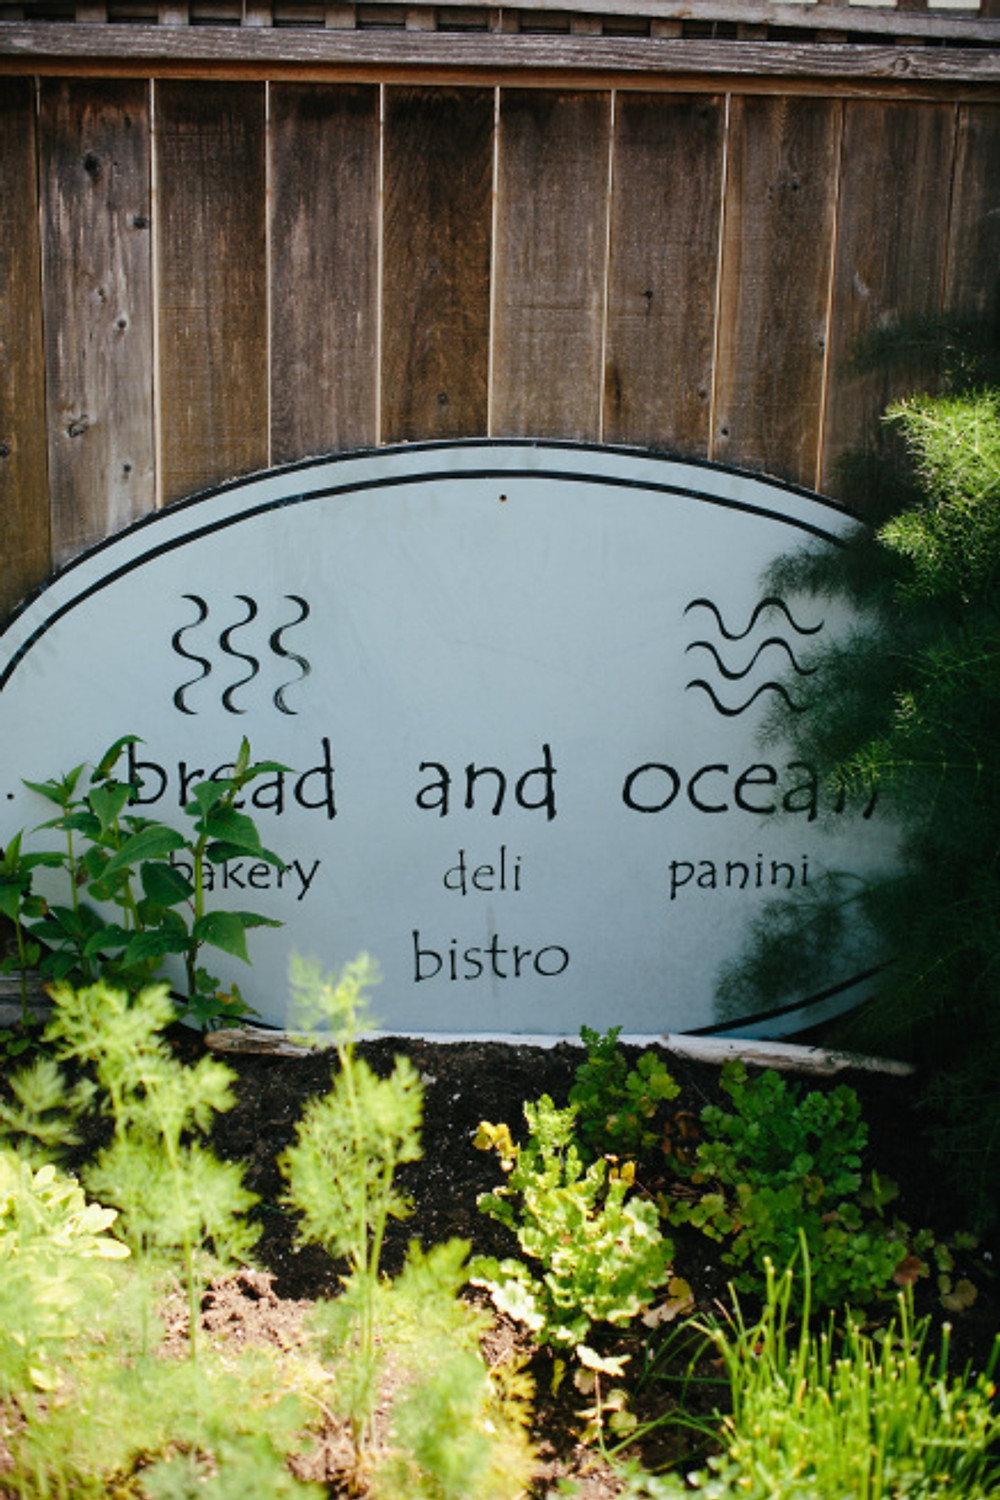 Then onto brunch at Bread & Ocean in Manzanita. Our photographer decided to not stay for brunch so we only have a few photos from this but all I can say is that it was a gorgeous morning on a private patio with crepes, coffee, and good friends.